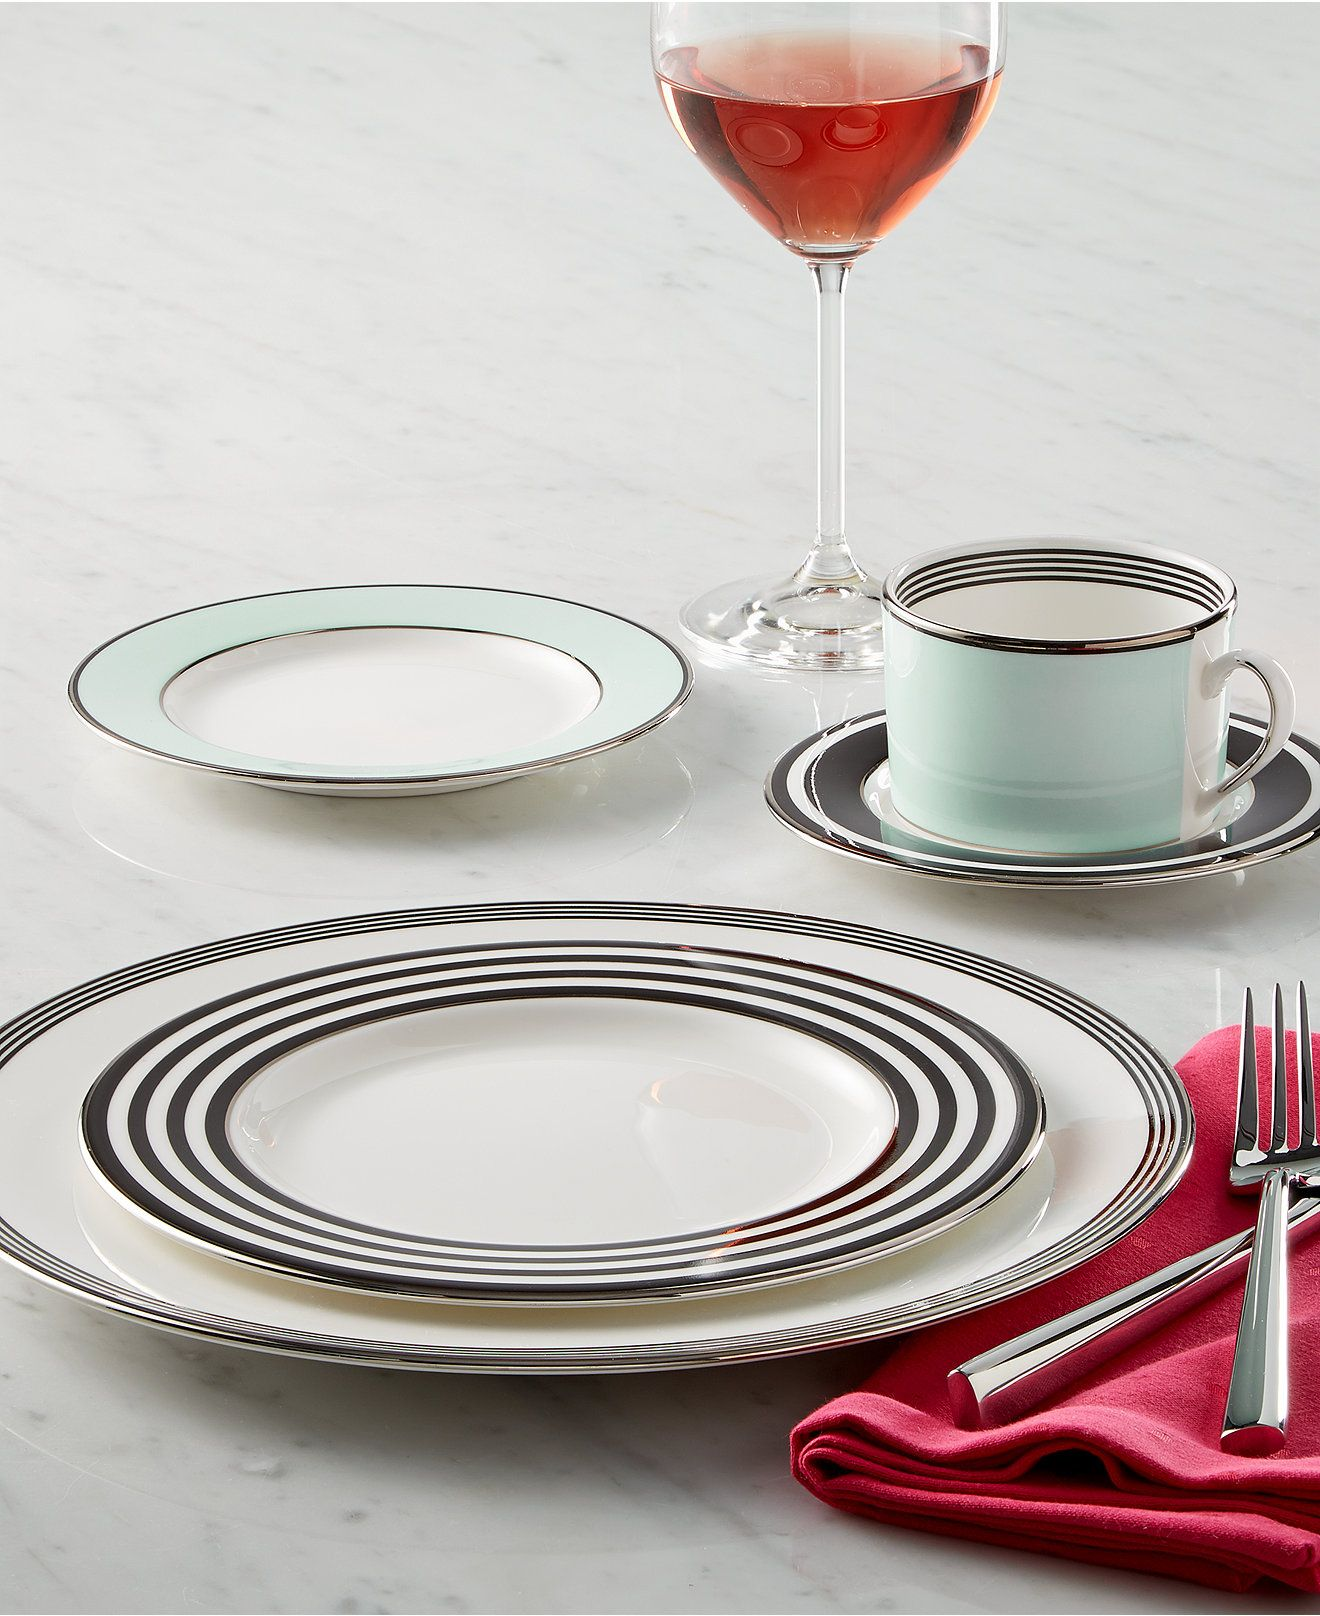 kate spade new york Parker Place Collection | China and Interiors